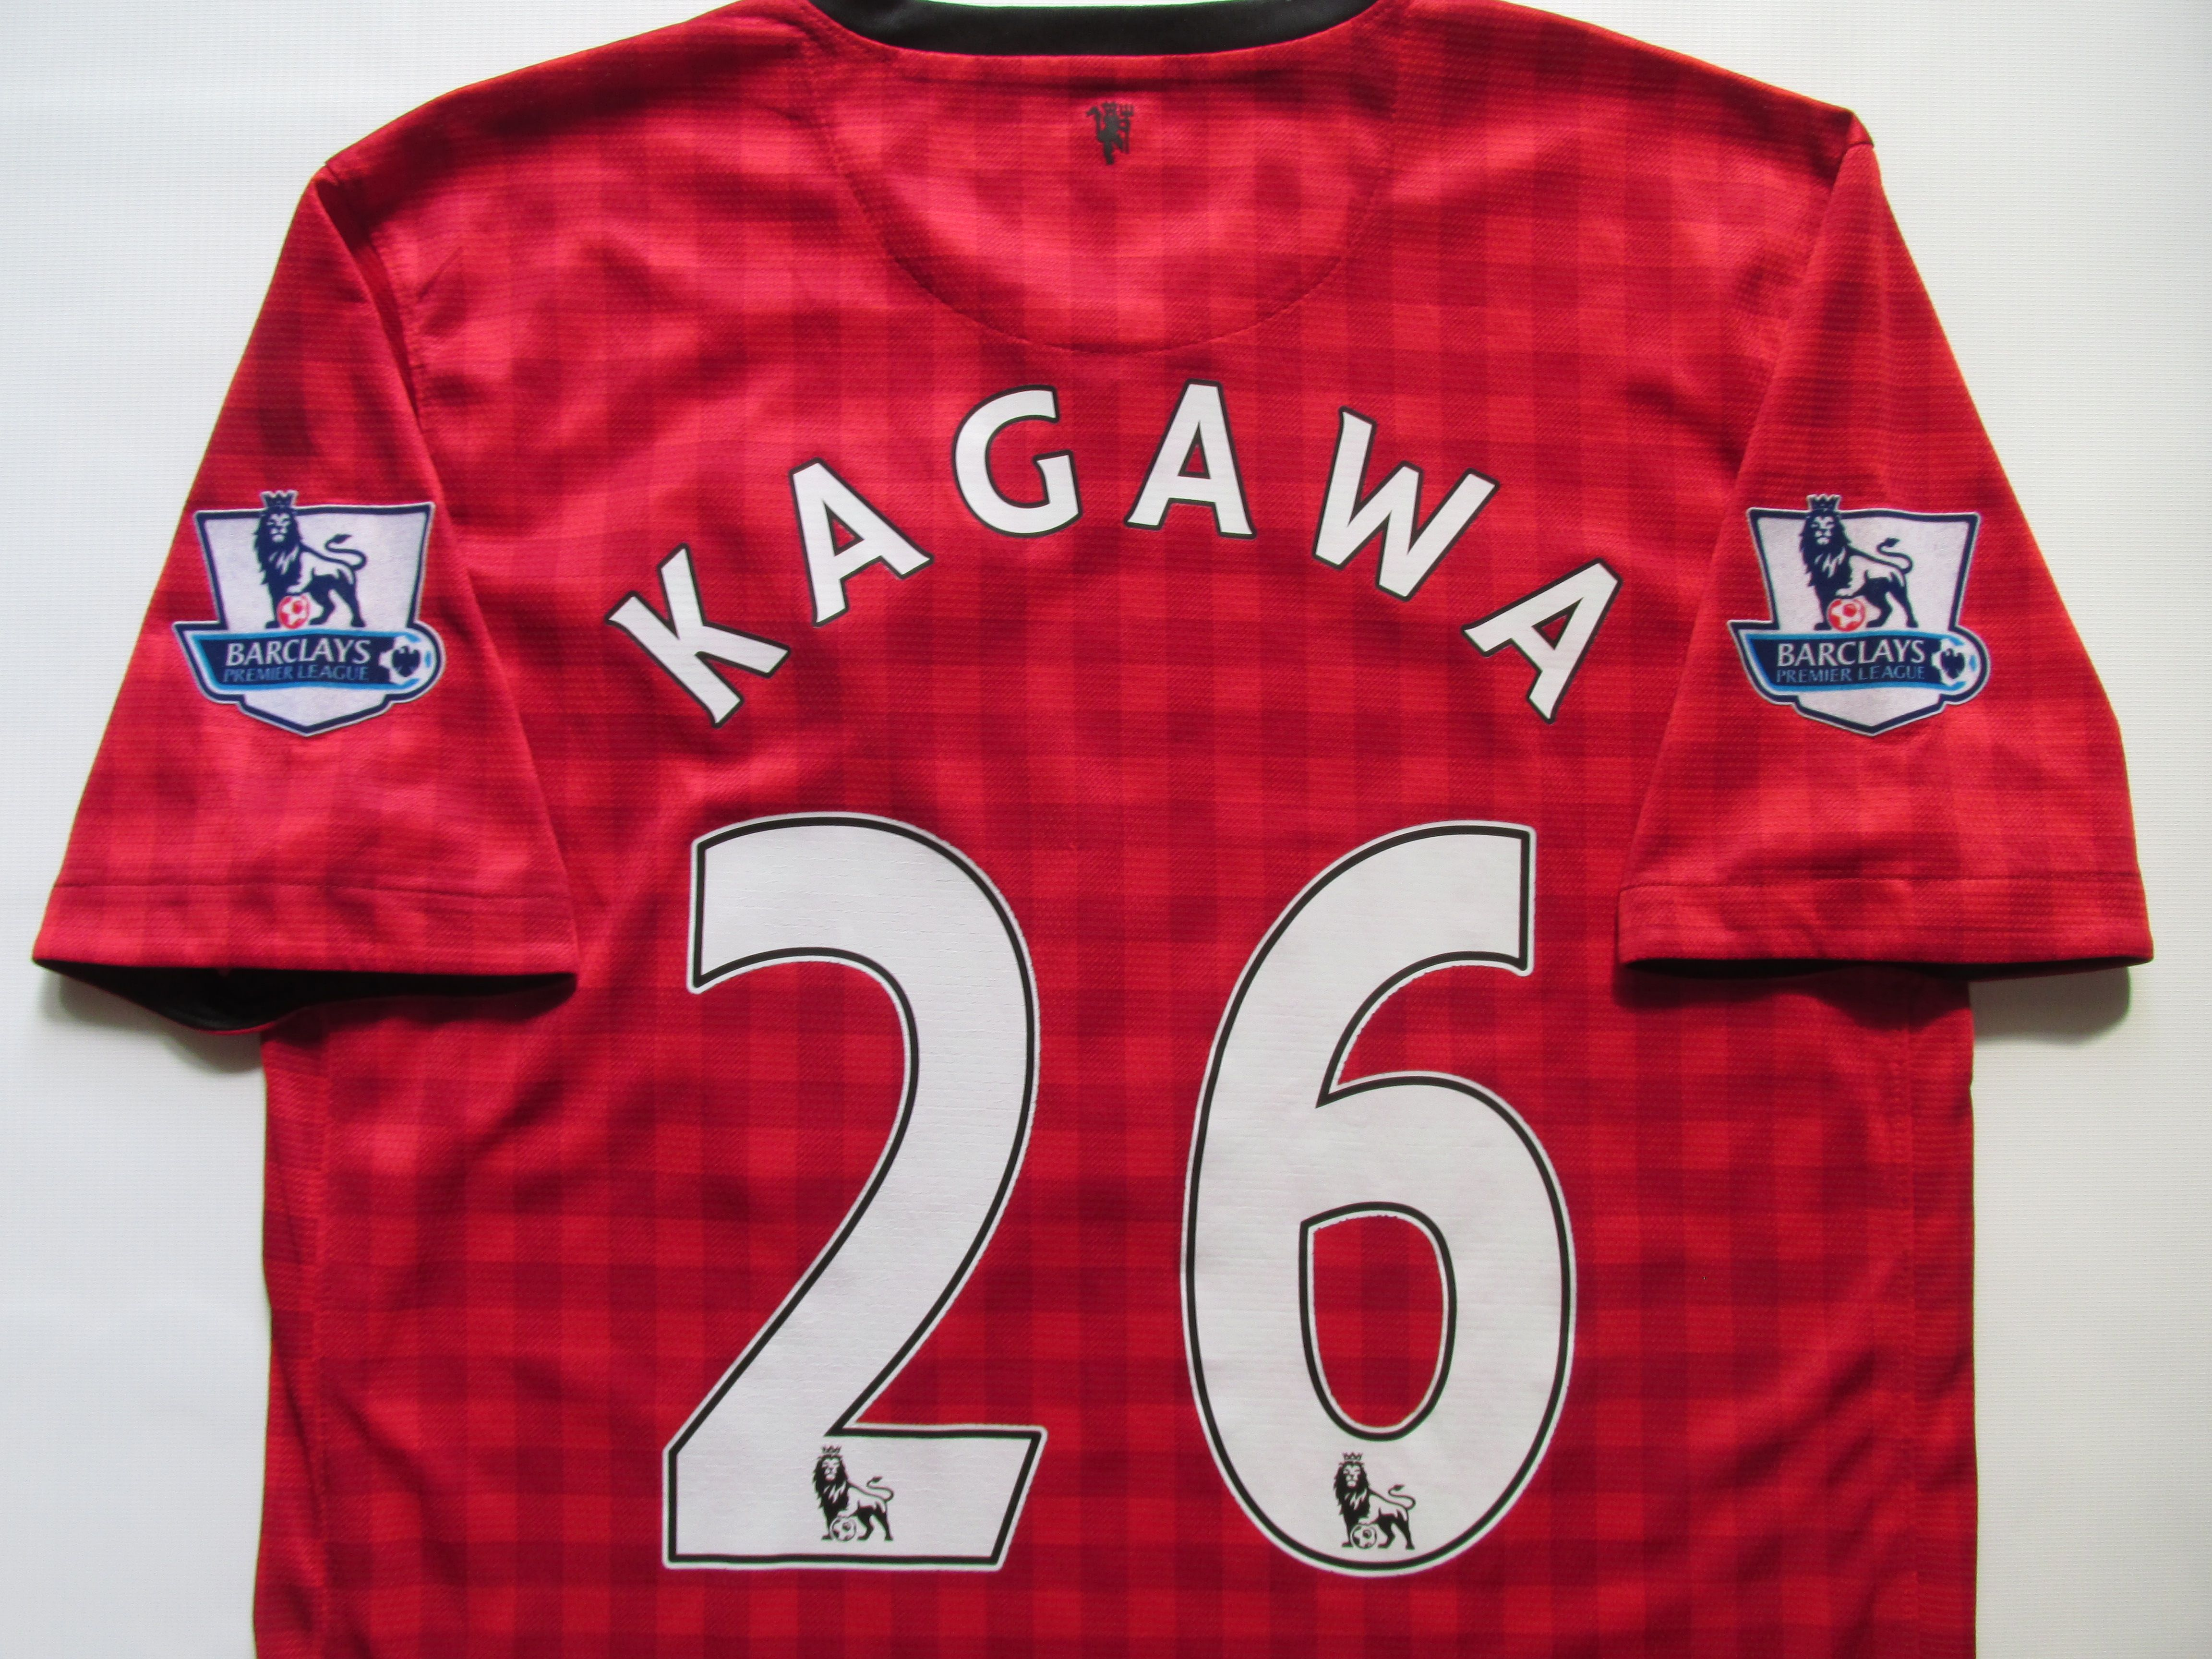 Manchester United 2012 2013 Home Football Shirt Shinji Kagawa 26 By Nike Mufc Manunited Manutd Reddevils Vintage Football Shirts Soccer Jersey Football Shirts